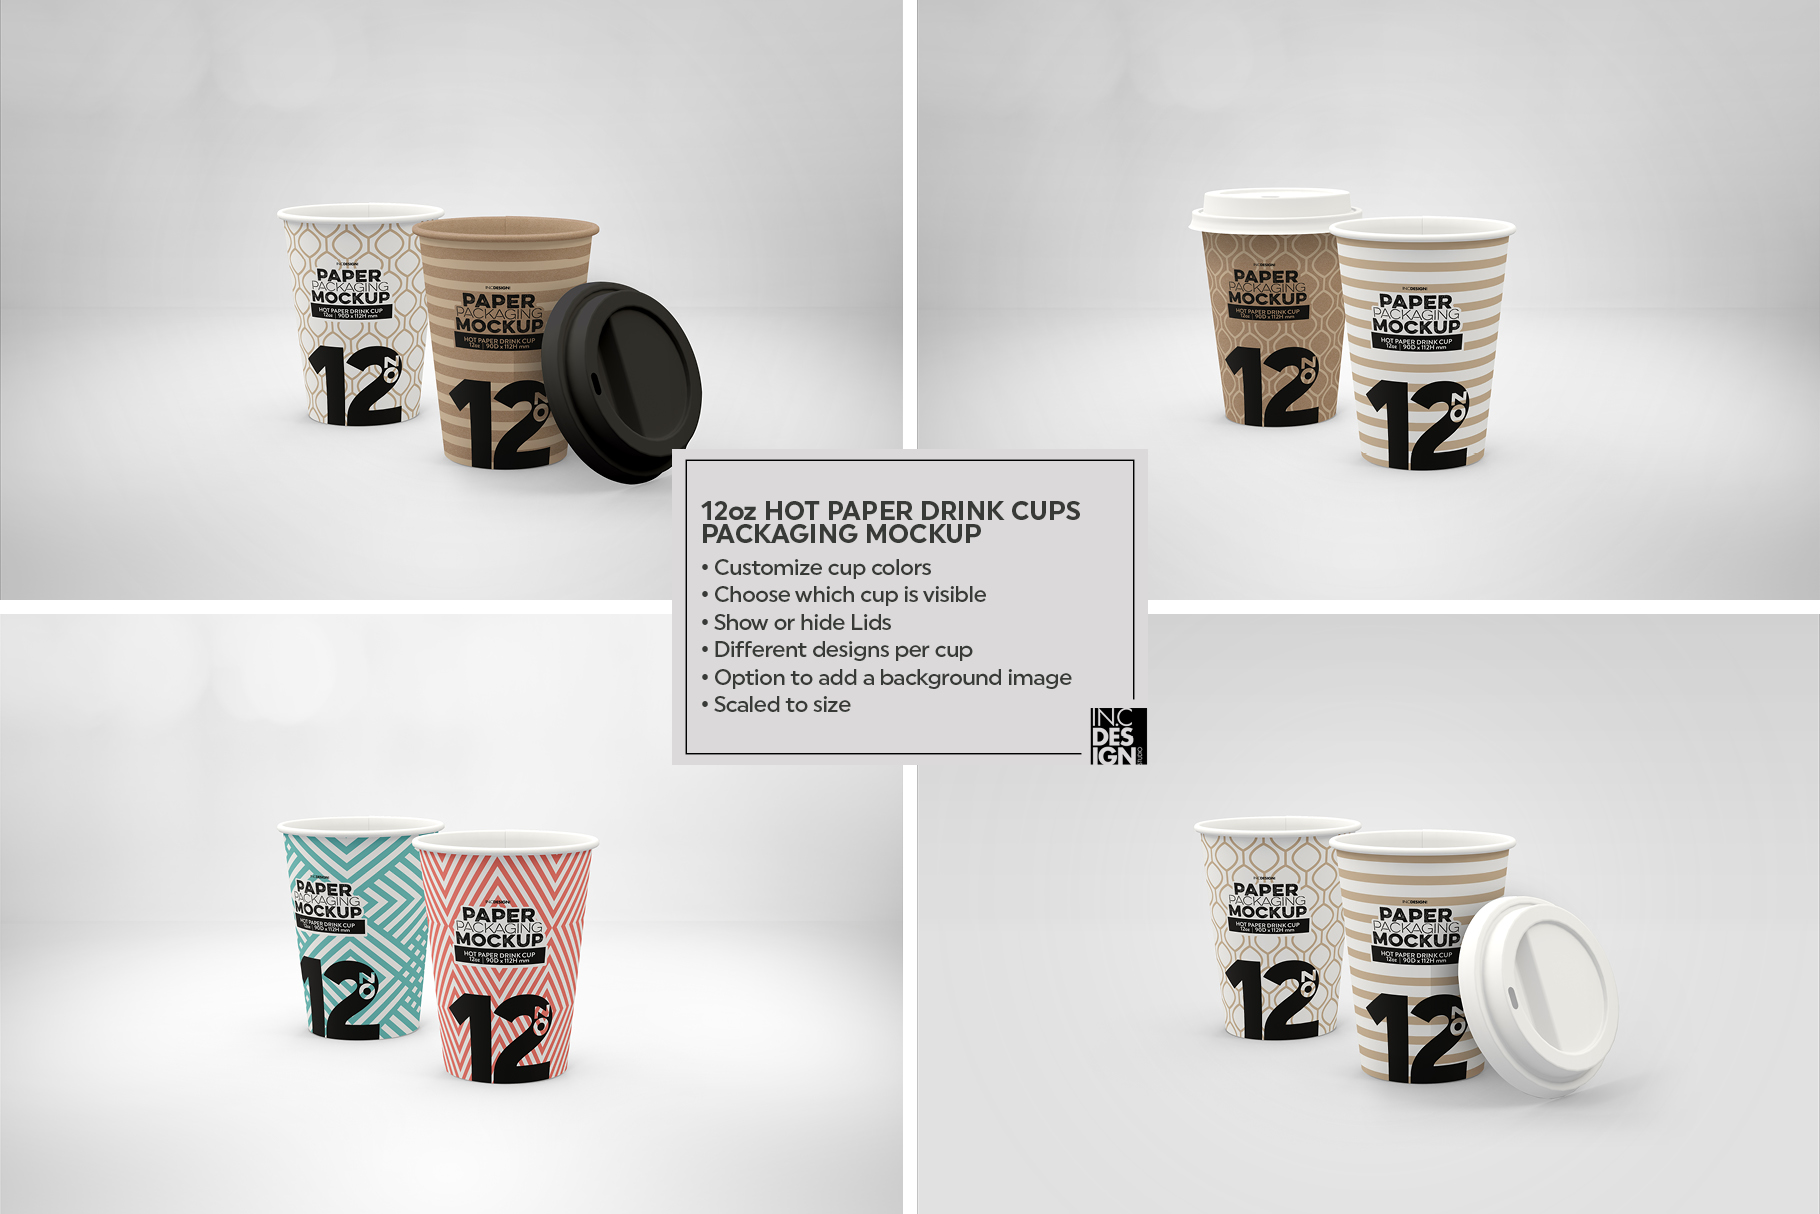 Paper Hot Drink Cups Packaging Mockup example image 14